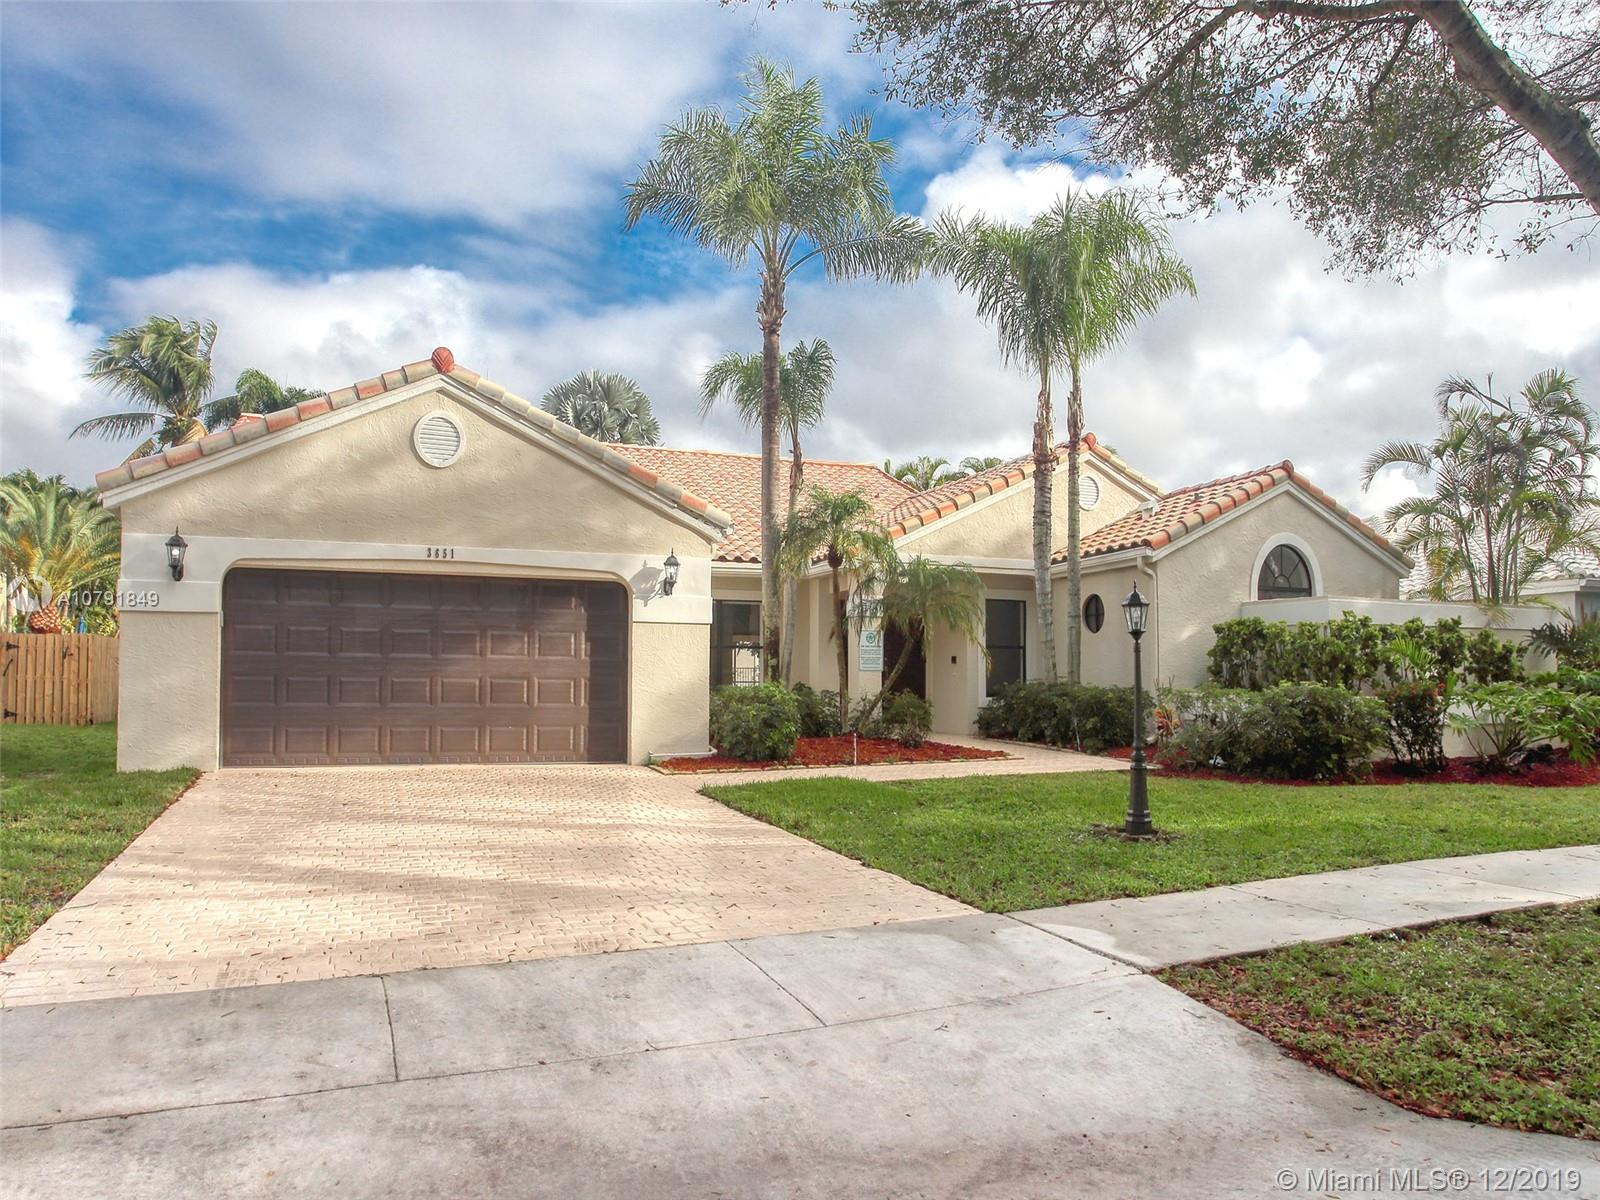 """SPECTACULAR """"ONE OF A KIND"""" AT """"THE ESTATES """" AT DESIRABLE EMBASSY LAKES 24 HRS GATED COMMUNITY **BEAUTIFULLY REMODELED** 4 BEDROOMS 21/2 BATH AND 2 CAR GARAGE*  W/ SPACIOUS LIVING AREAS. VOL. CEILINGS** BRAND NEW ROOF IN 2019** PLENTY OF ROOM FOR A POOL**TOO MANY UPGRADES TO MENTIONS A MUST SEE**"""